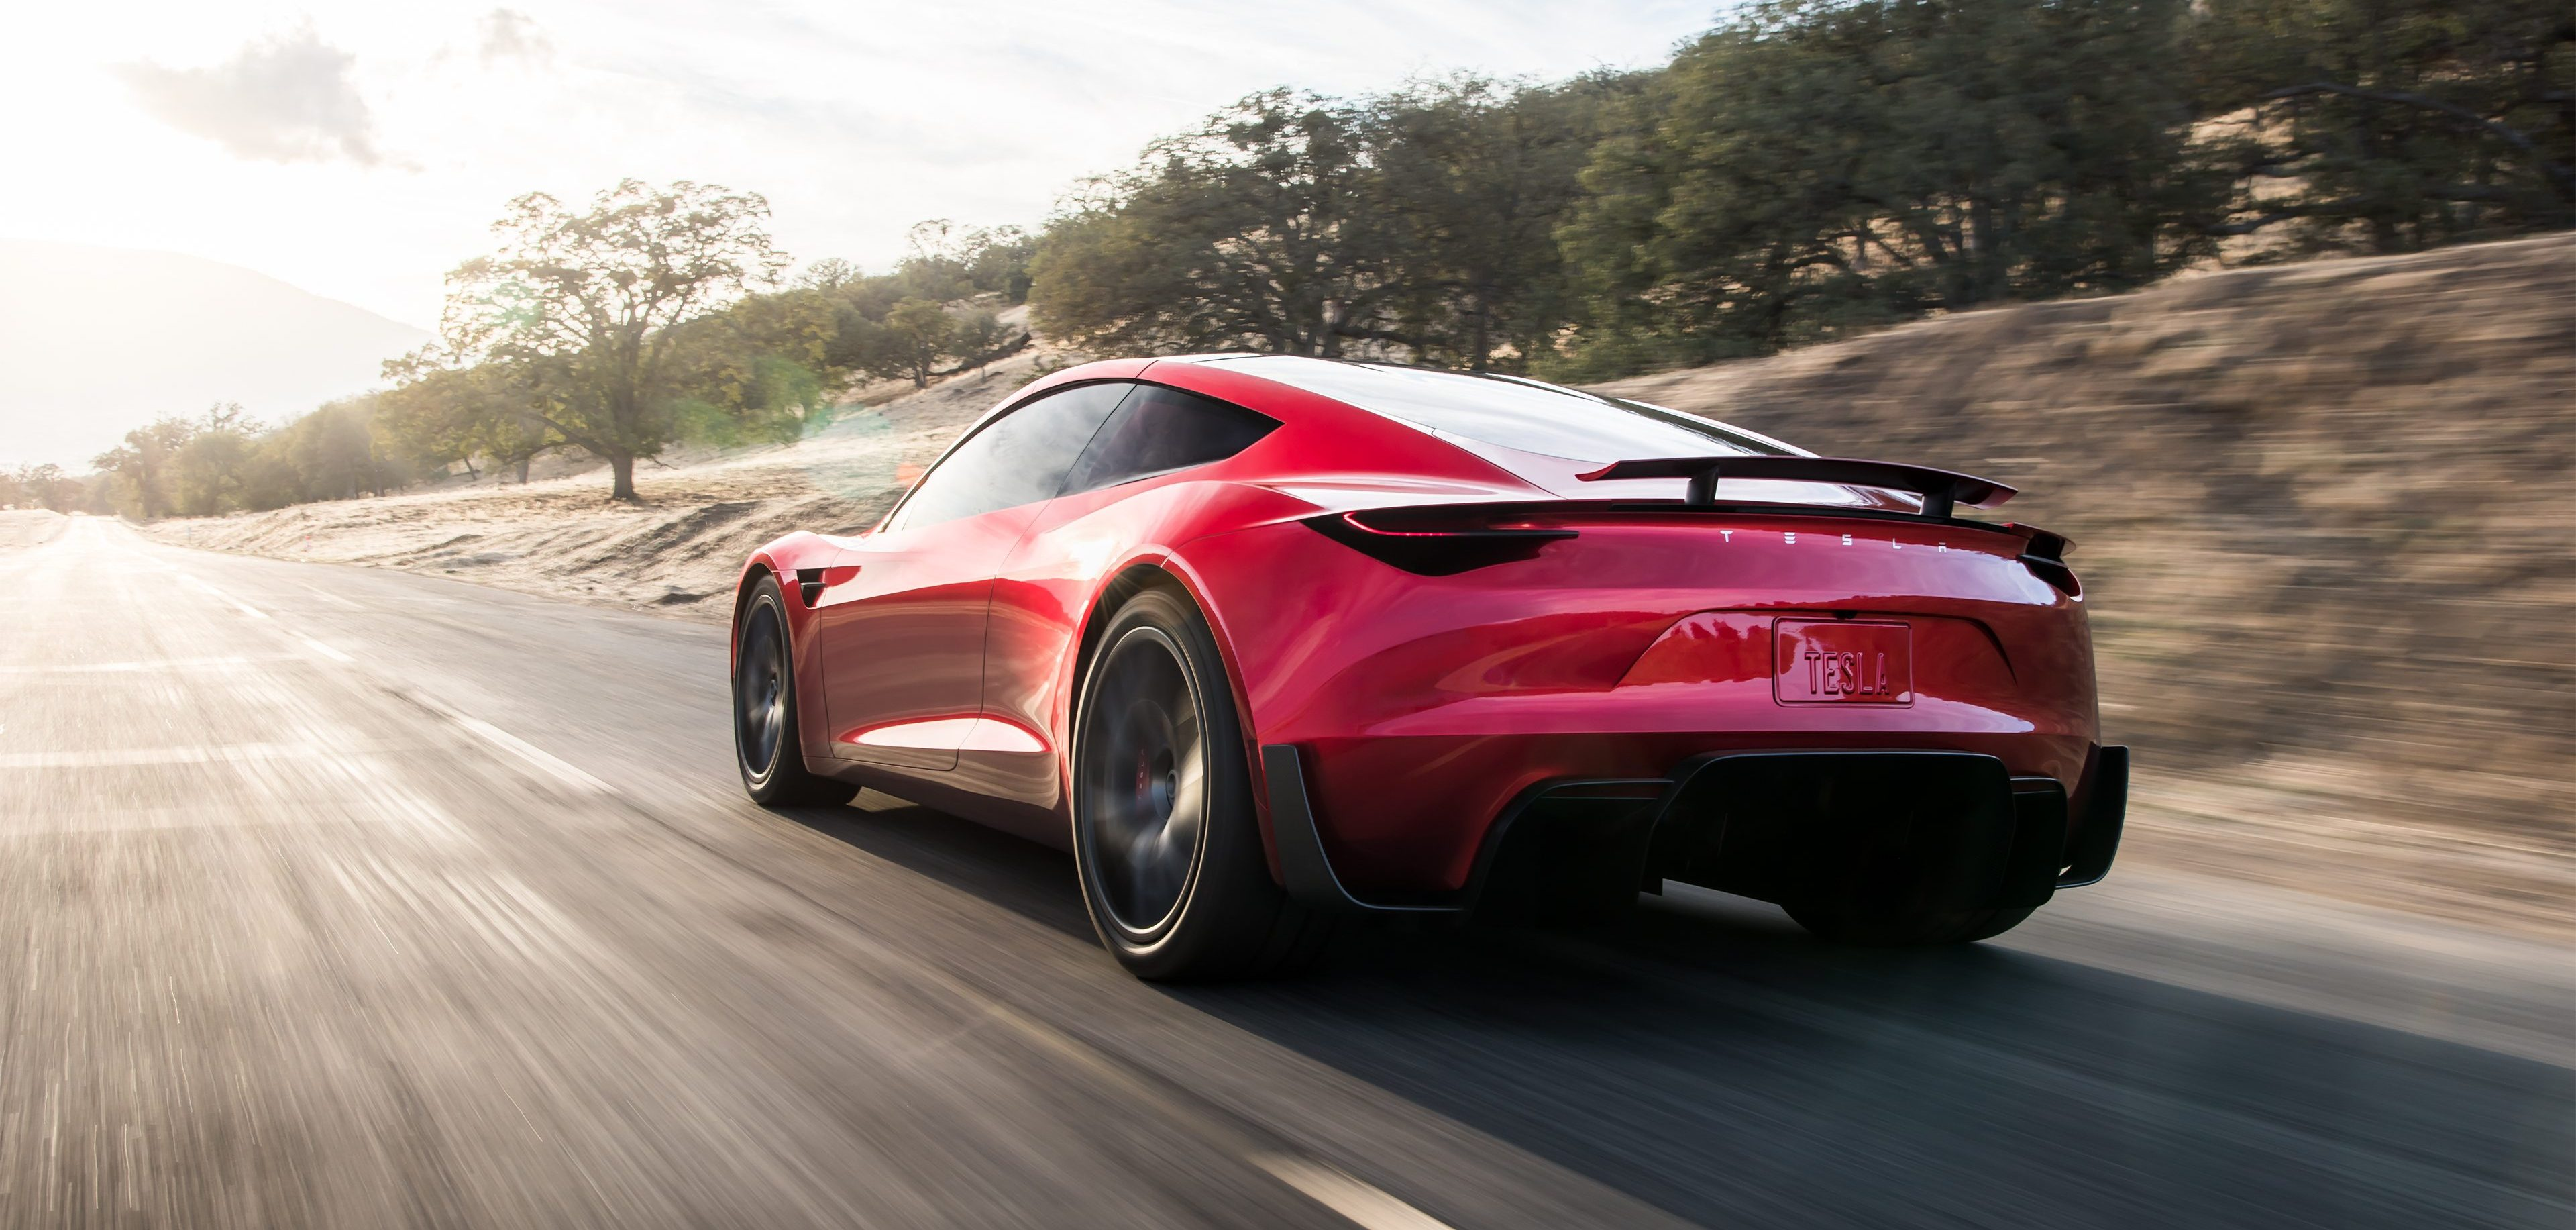 The 5 Most Exciting New Electric Cars You Can In Next 2 Years